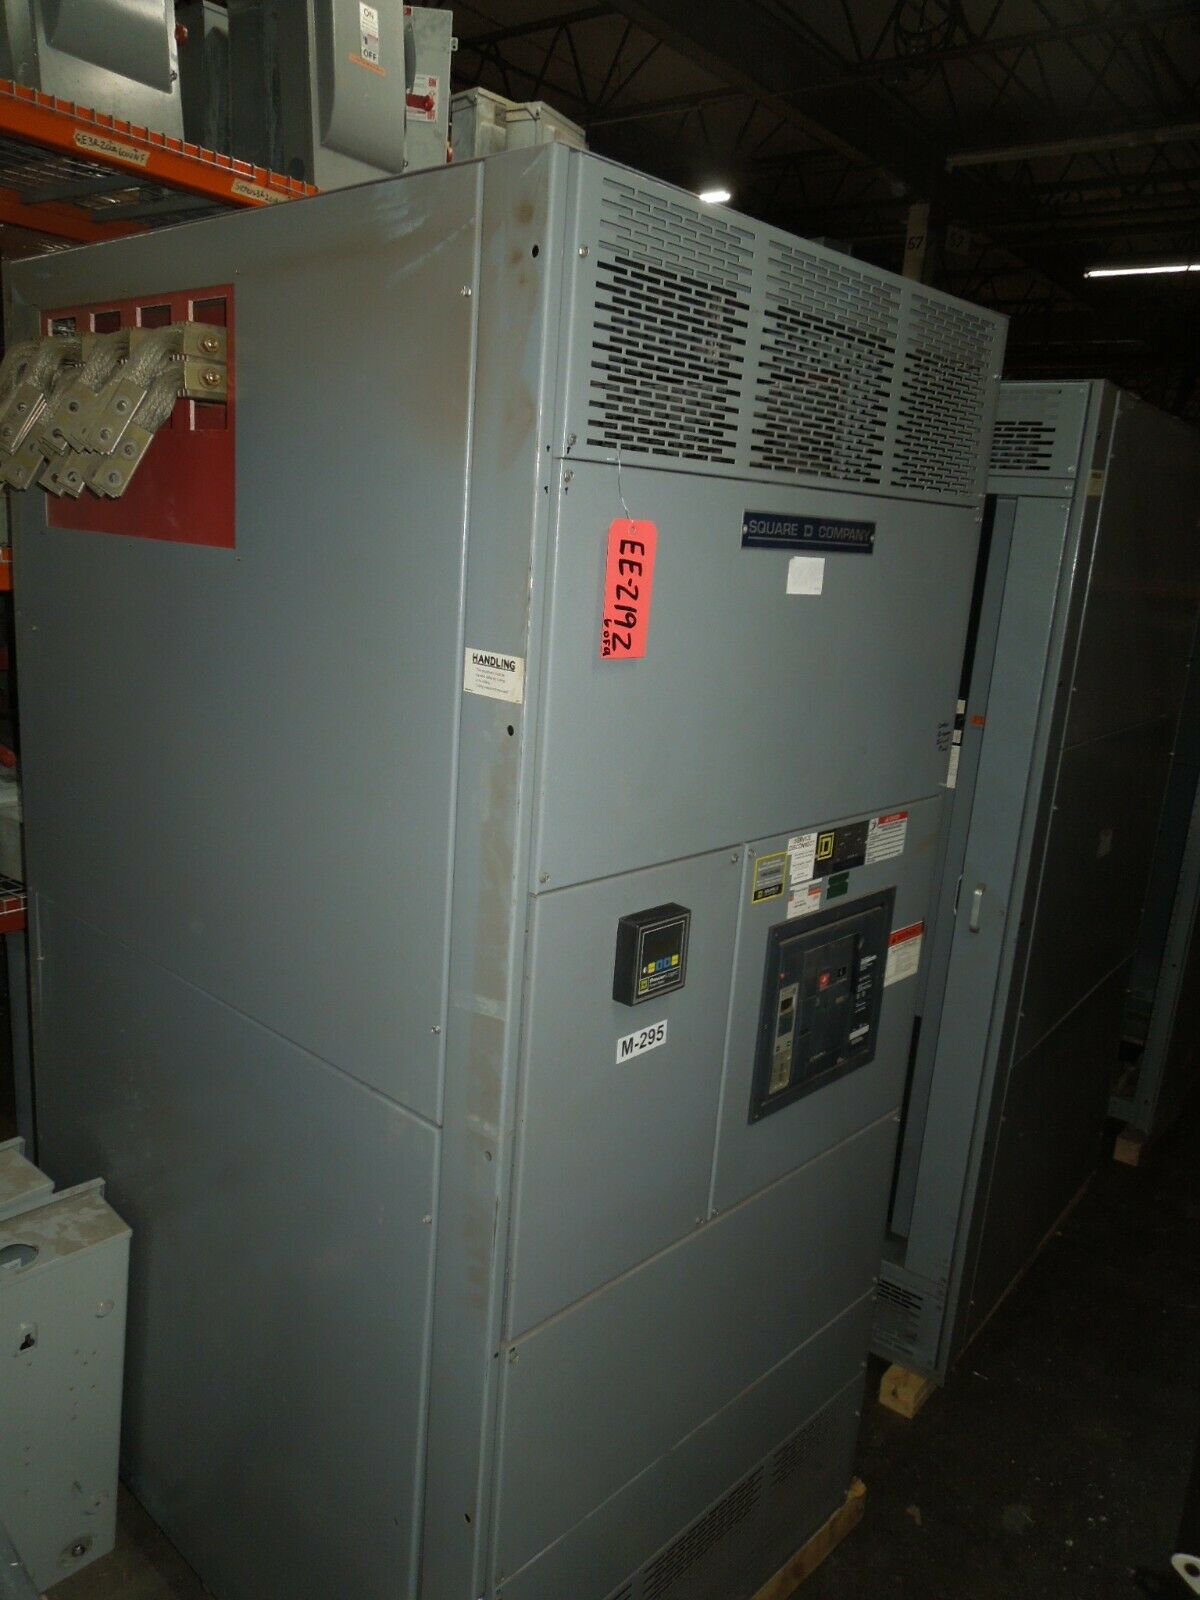 Picture of Square D QED Power Style I-Line Switchboard 4000A 3ph 480Y/277V NW40H Main w/ LSIG Used E-OK